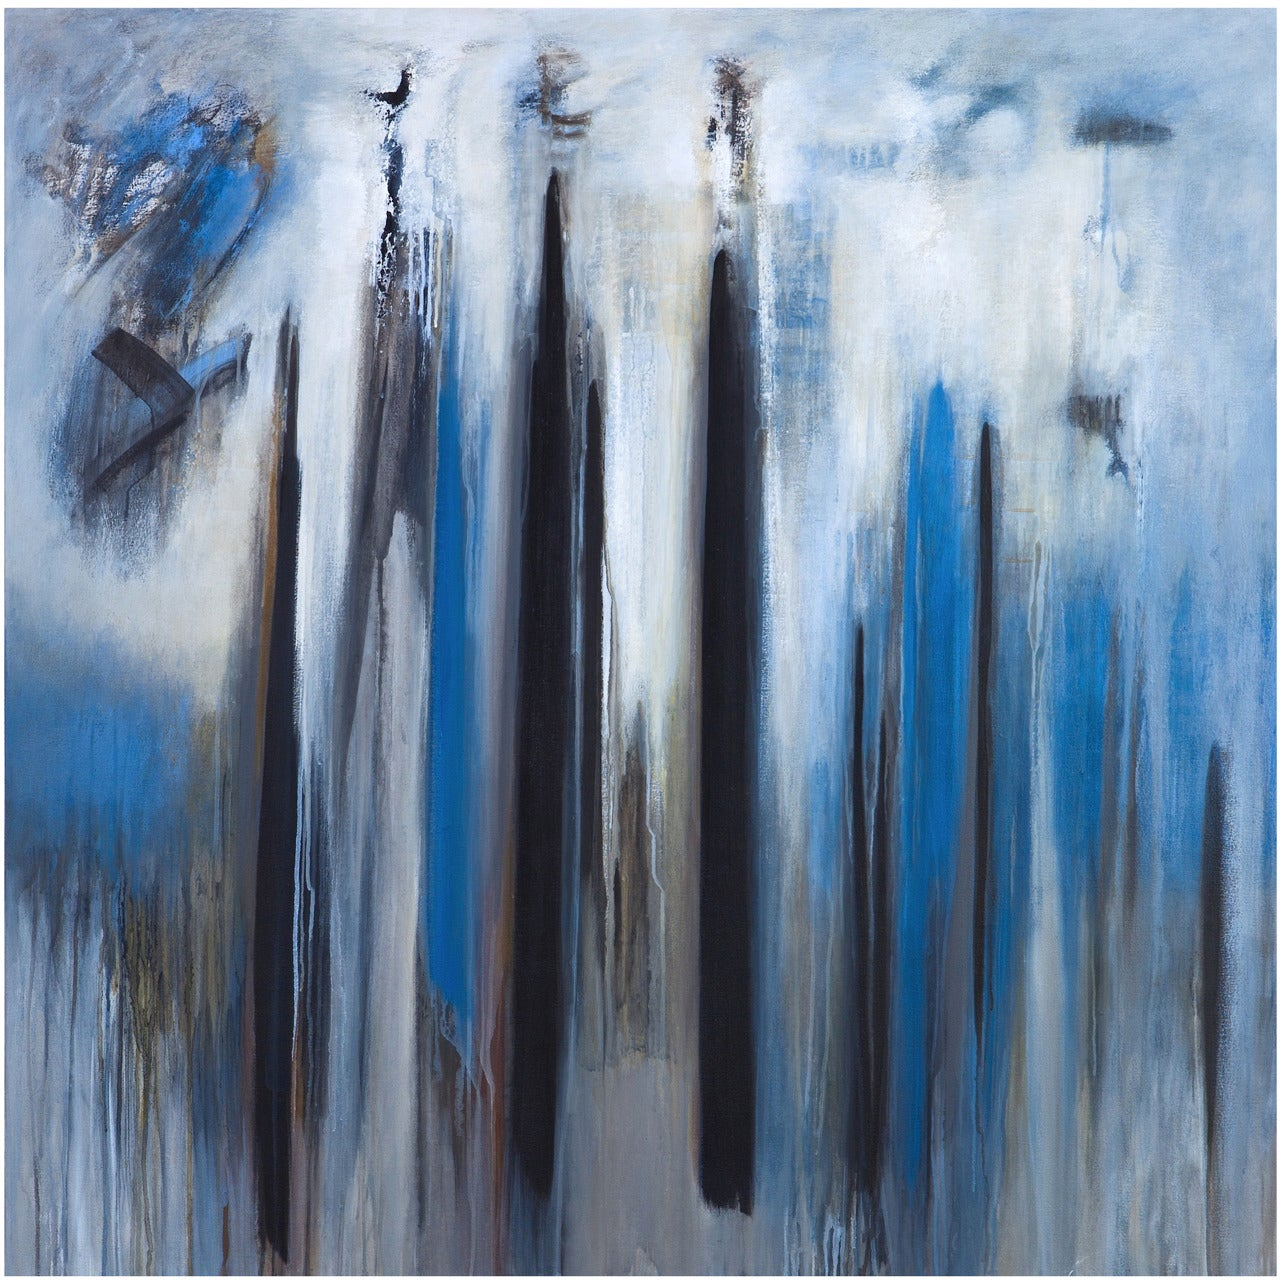 Abstract Blue Painting by Brazilian Artist Ivanilde Brunow